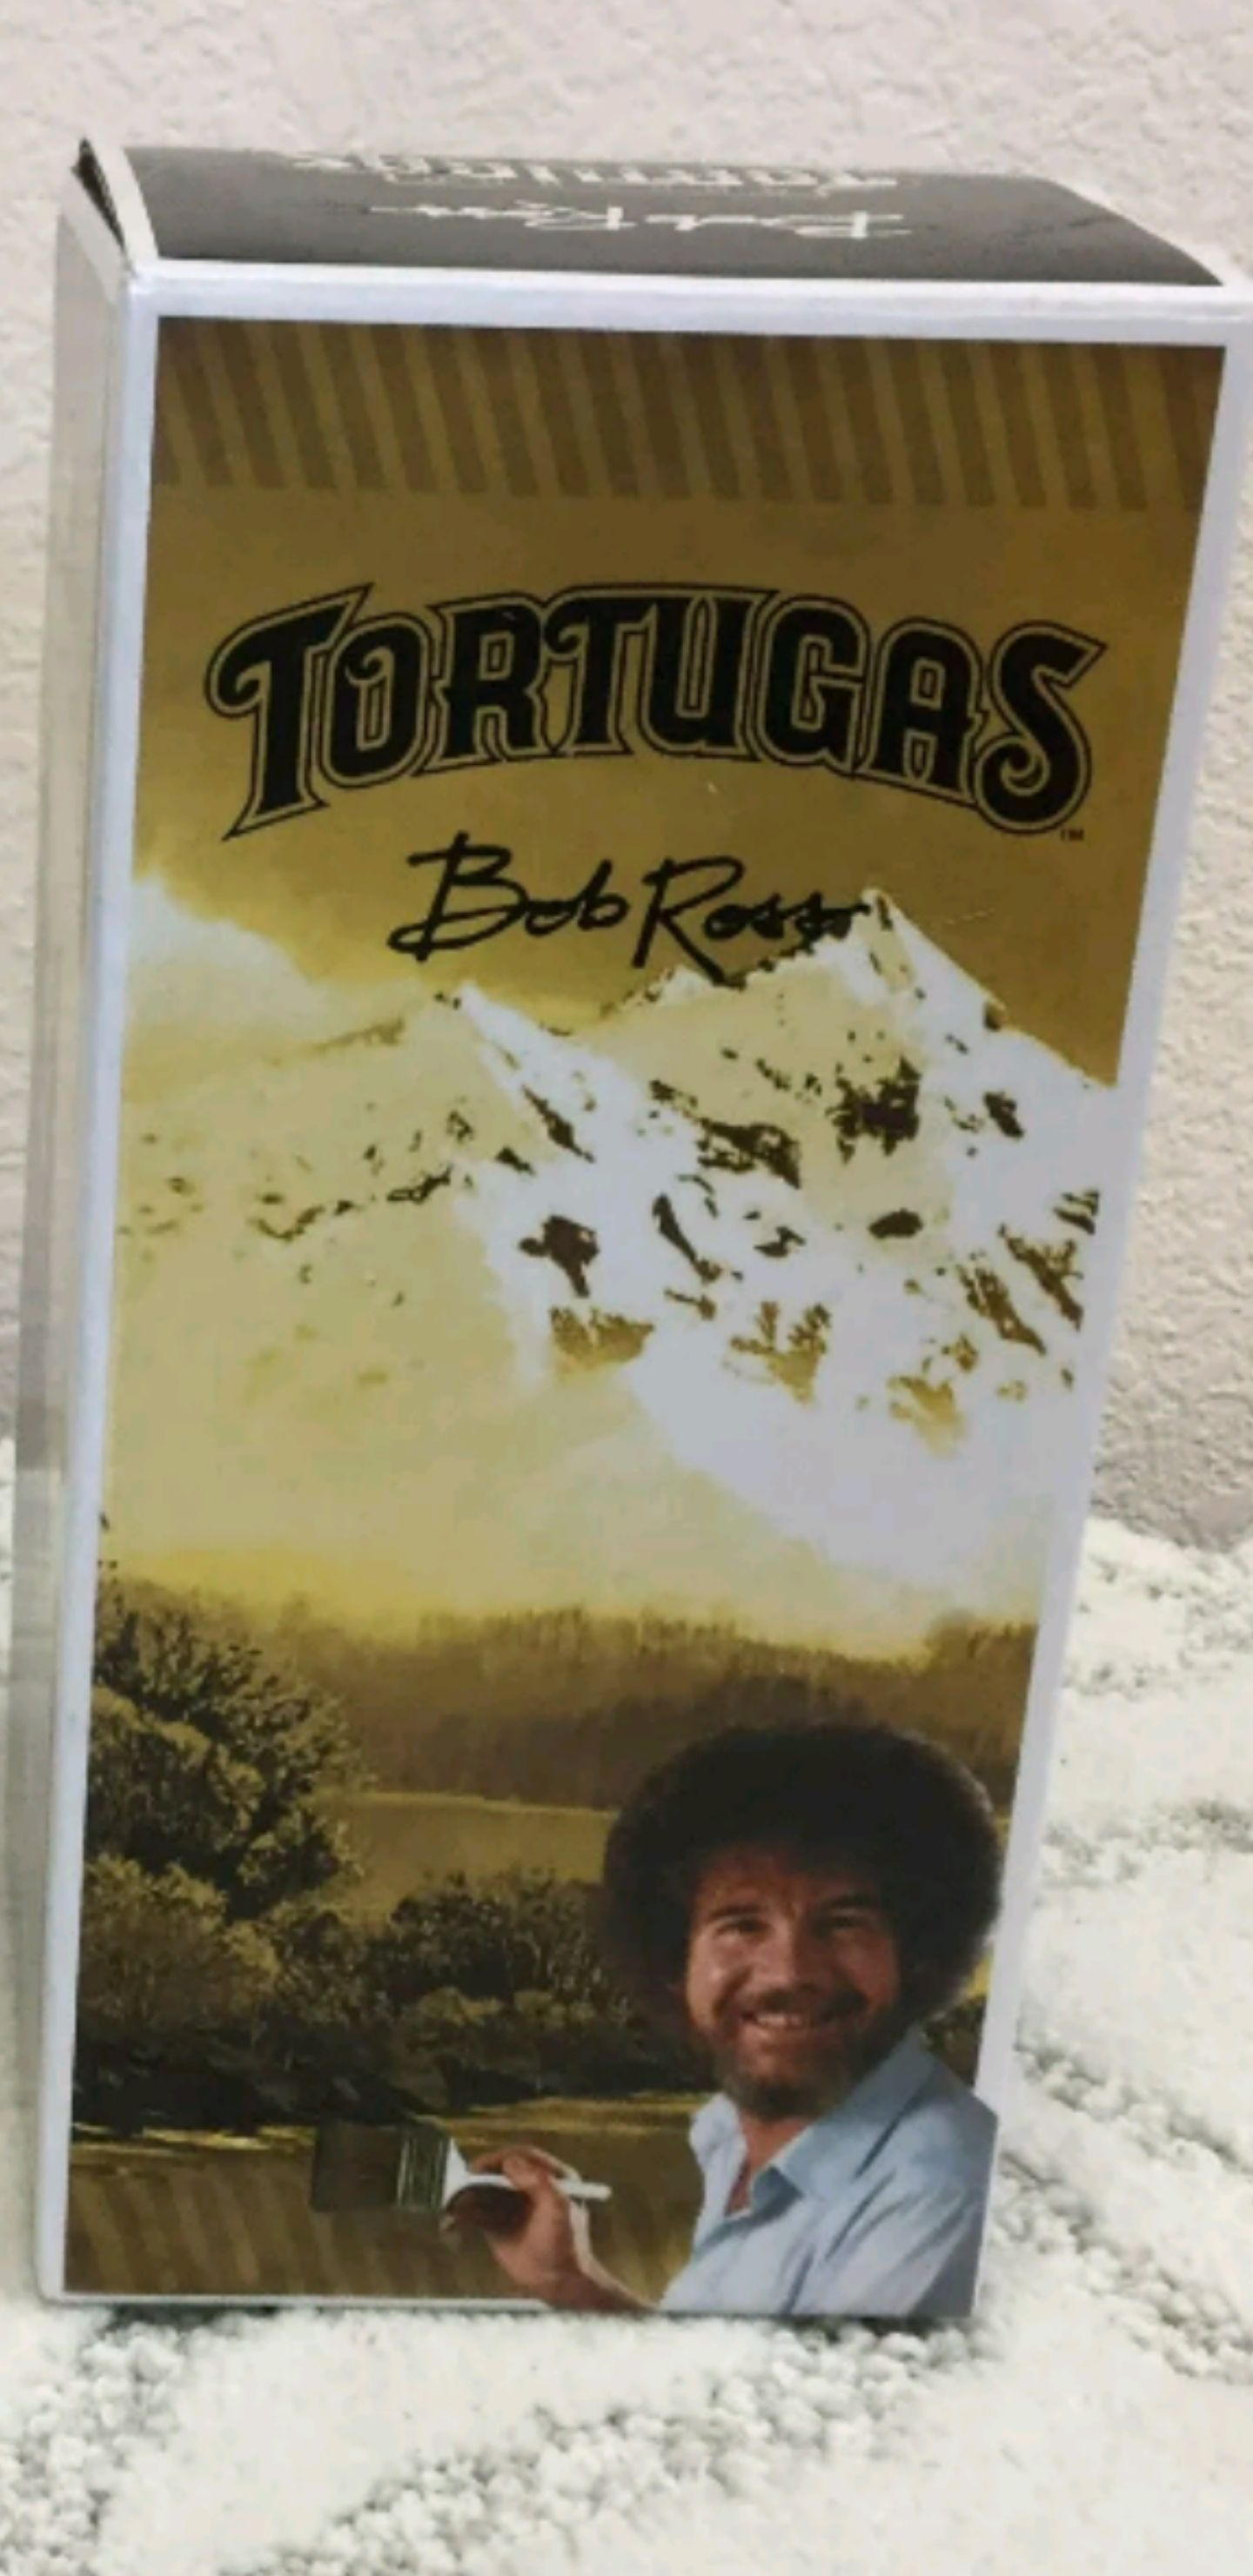 Bob Ross Gold Bobblehead back image (back cover, second image)